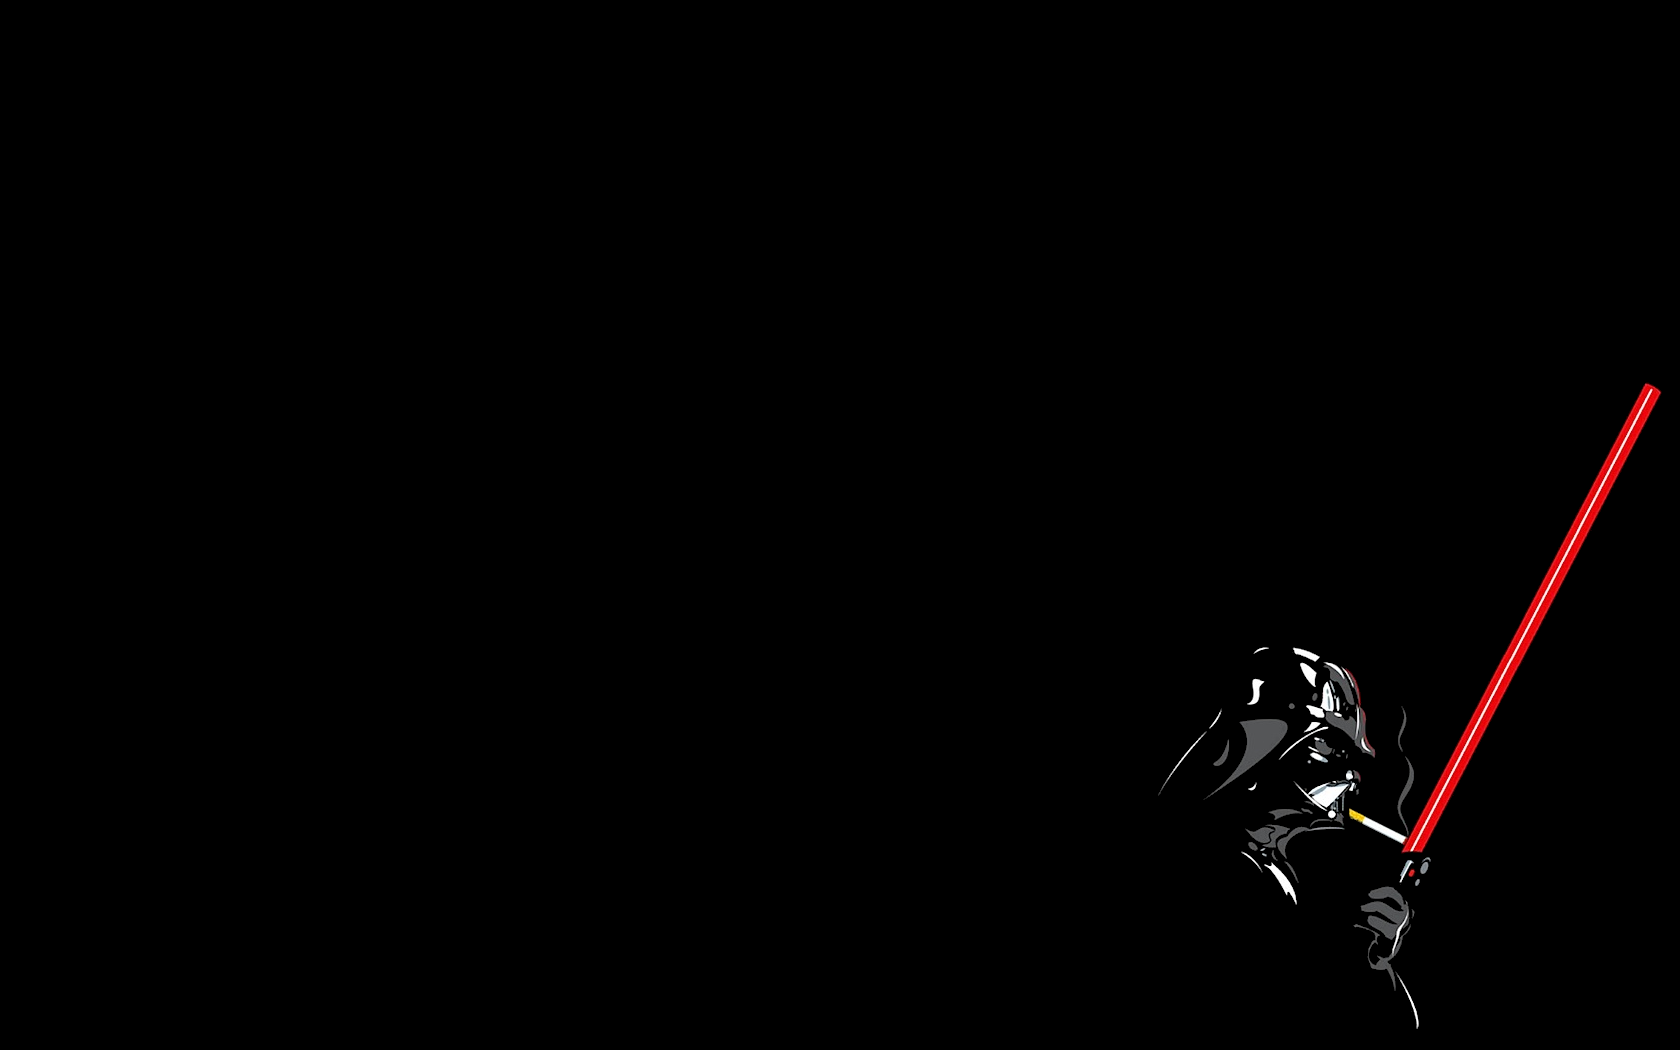 Wallpaper Hd 1080P Black And White Star Wars Super Wallpapers 1680x1050